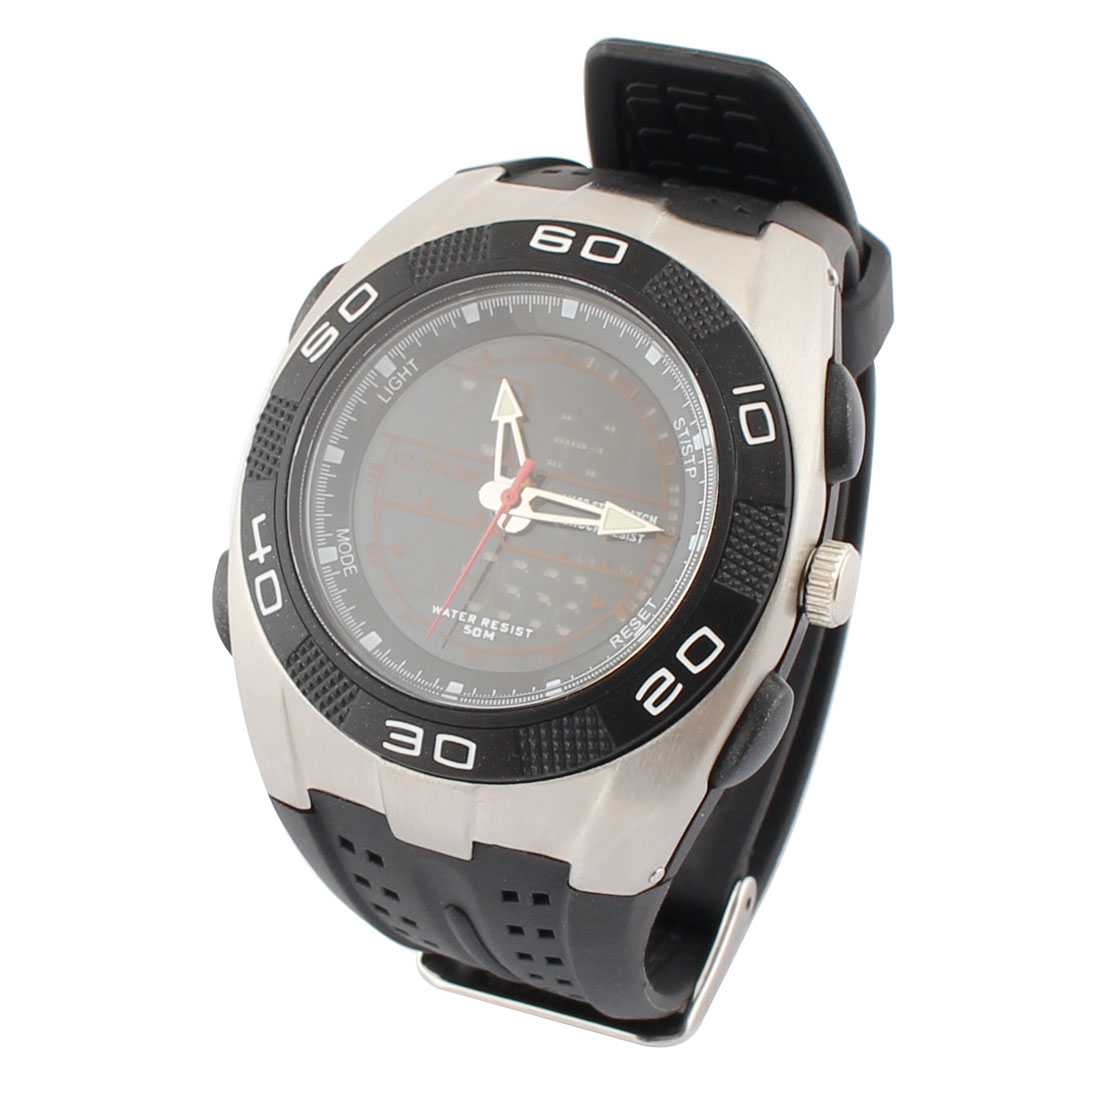 Outdoor Sports Water Resistant Luminous Peak Climbing Watch Black Gray